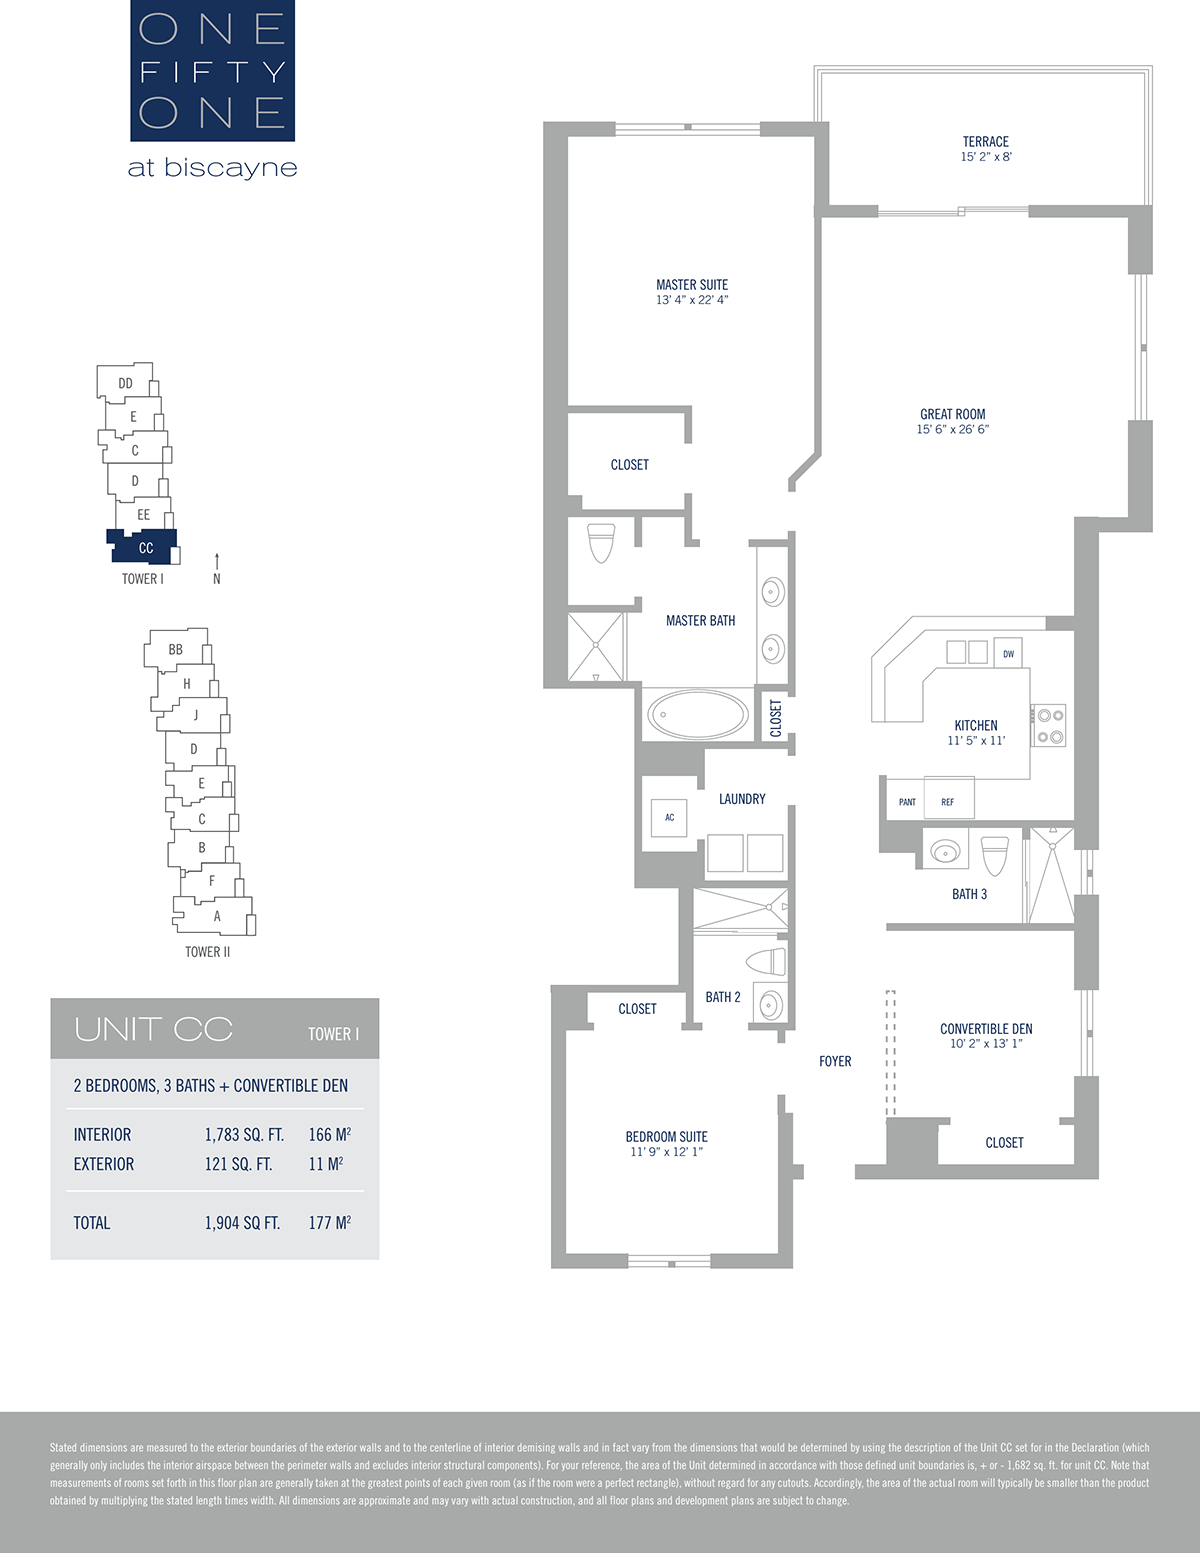 One Fifty One At Biscayne - Floorplan 12